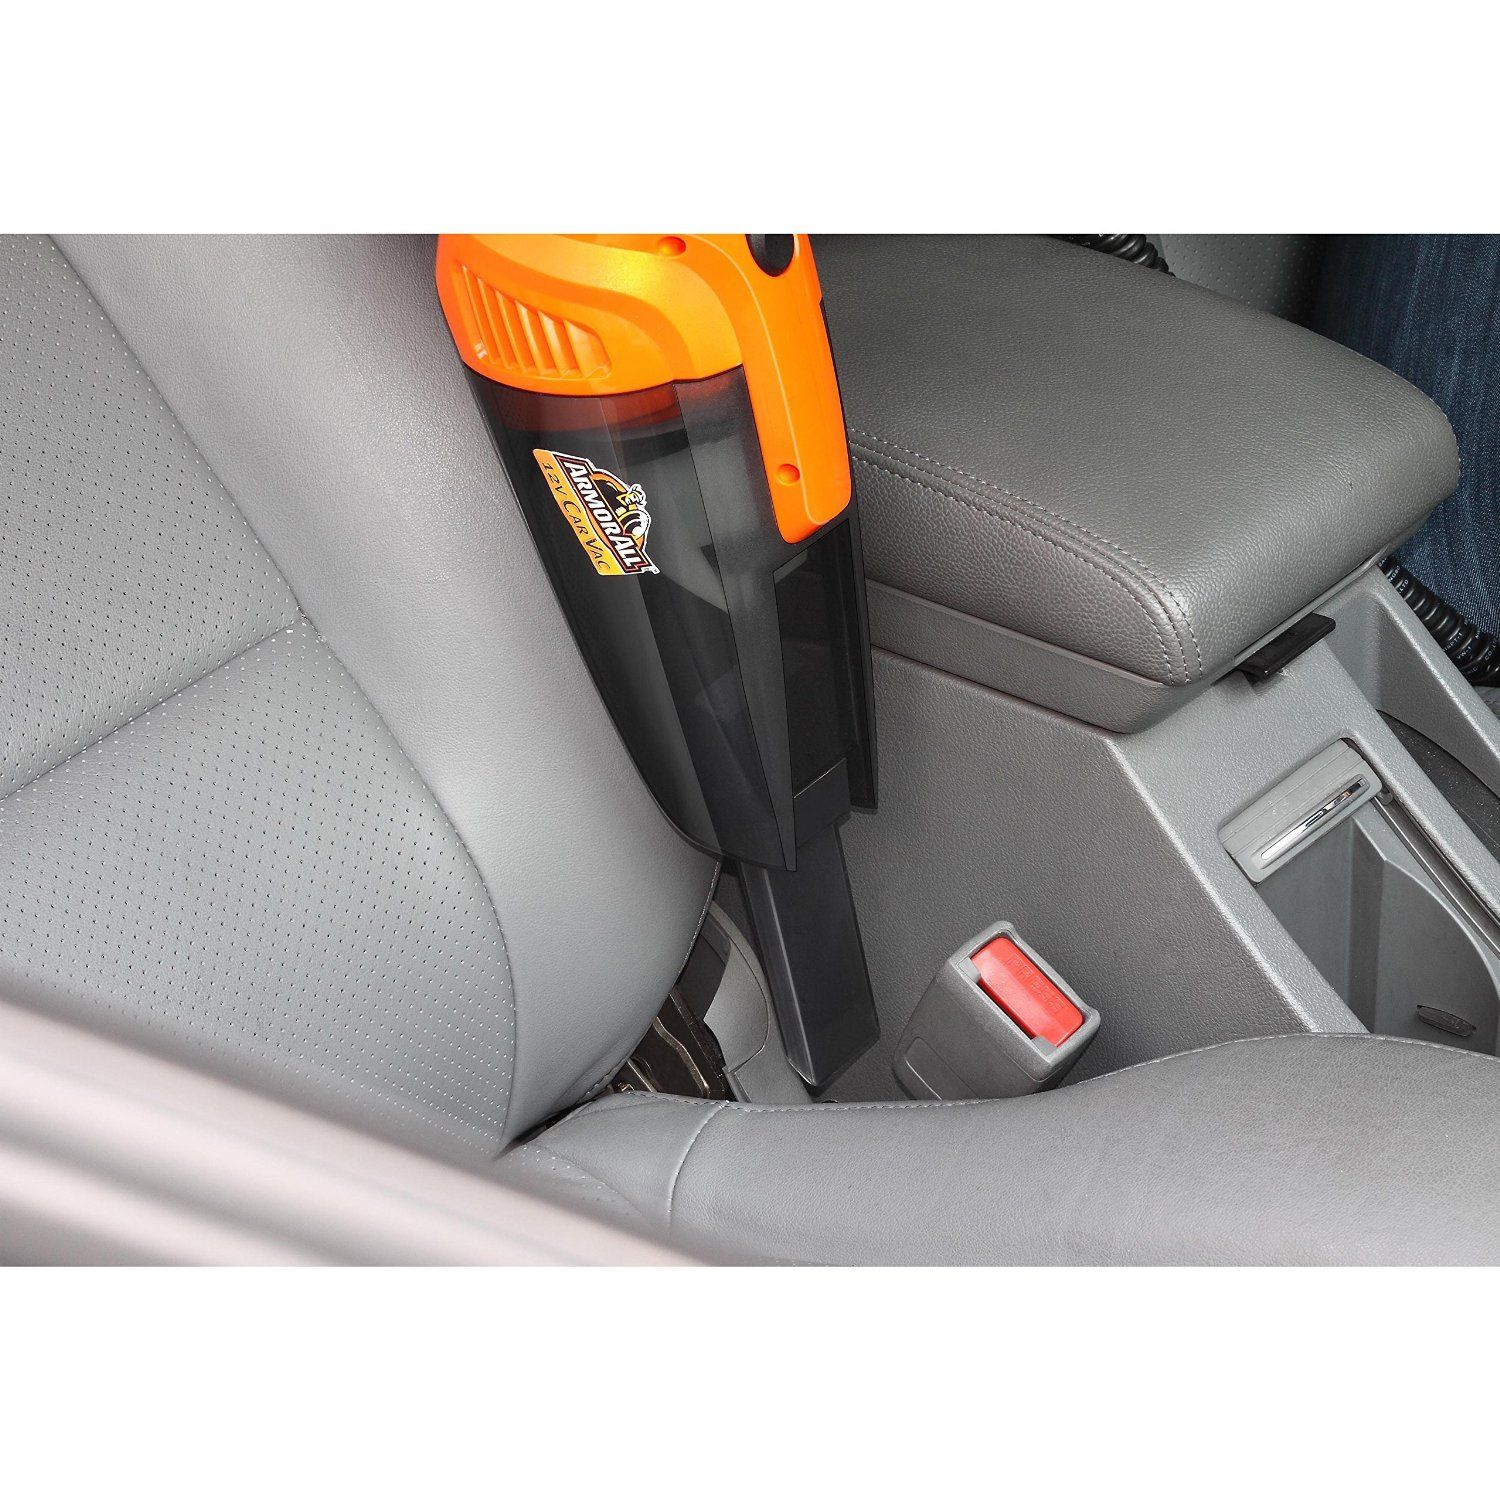 this armor all 12v car vac is specifically intended to clean the interior of your car able to. Black Bedroom Furniture Sets. Home Design Ideas